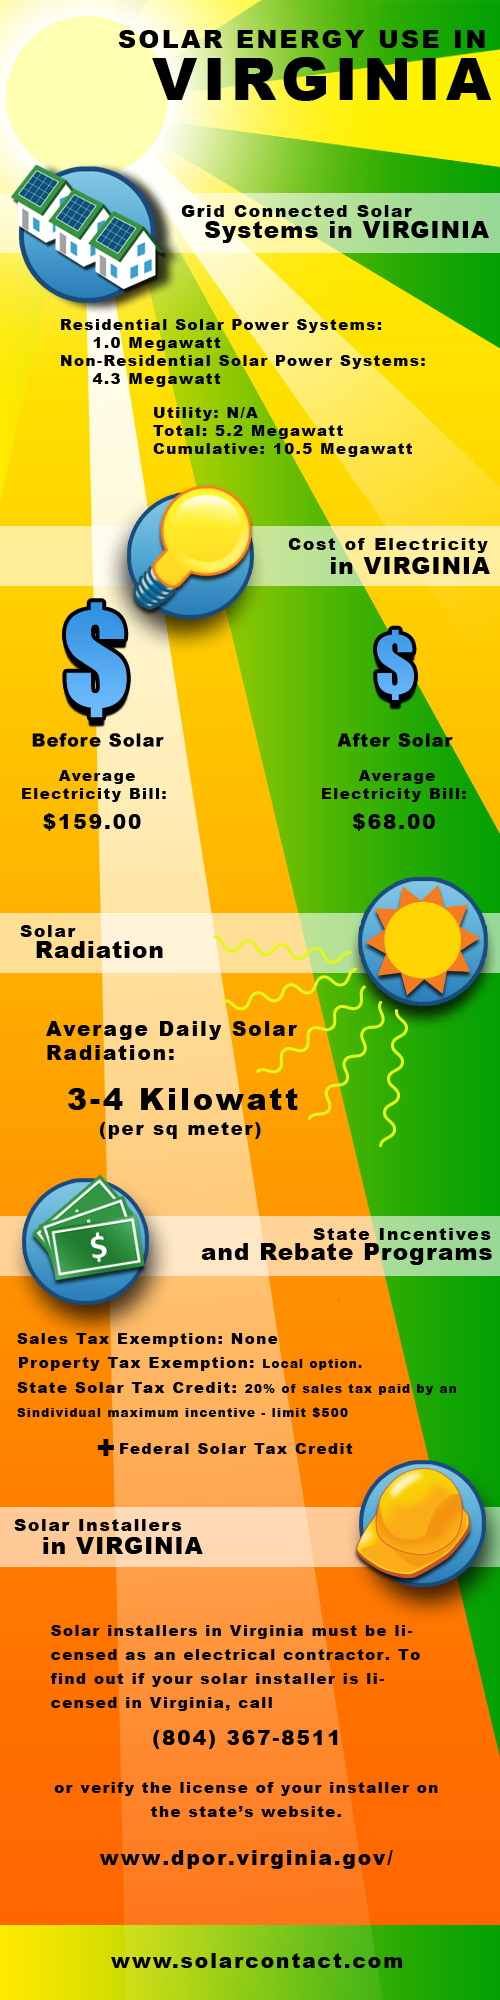 Fact Sheet Solar Energy Use in Virginia